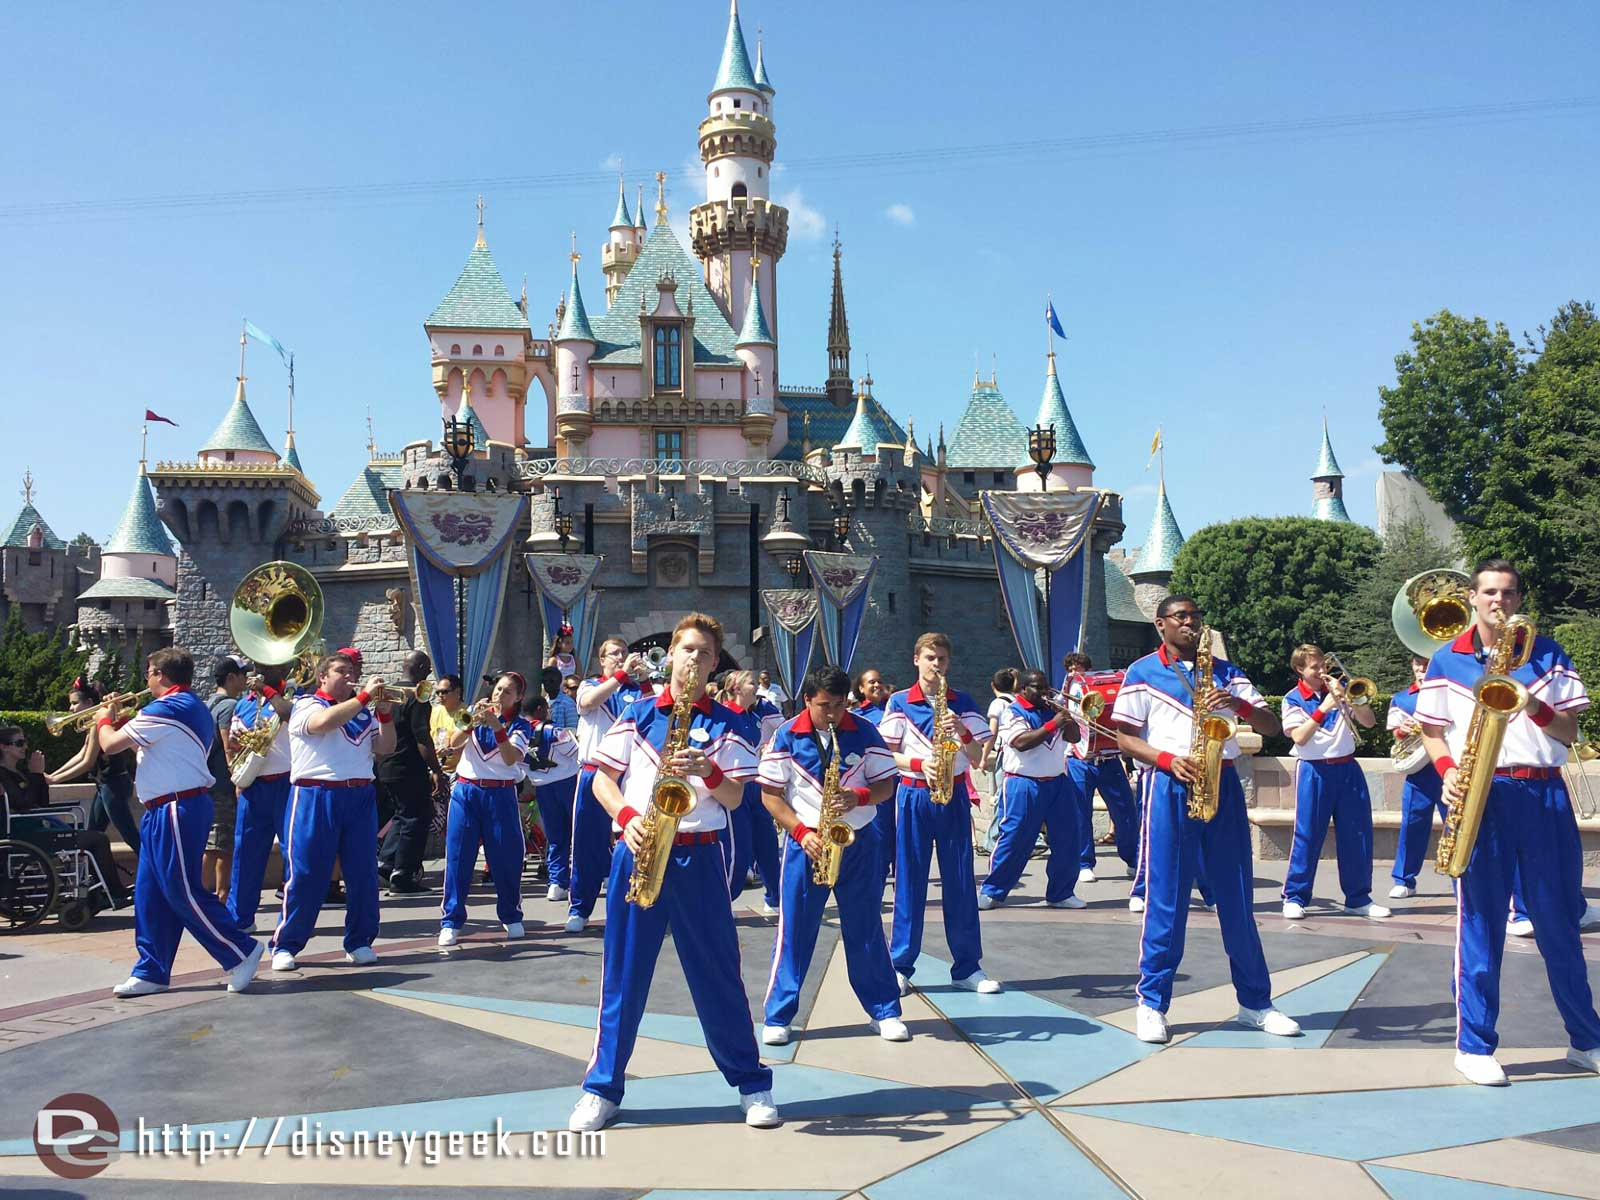 3:25pm #Disneyland 2014 All-American College Band Castle Set